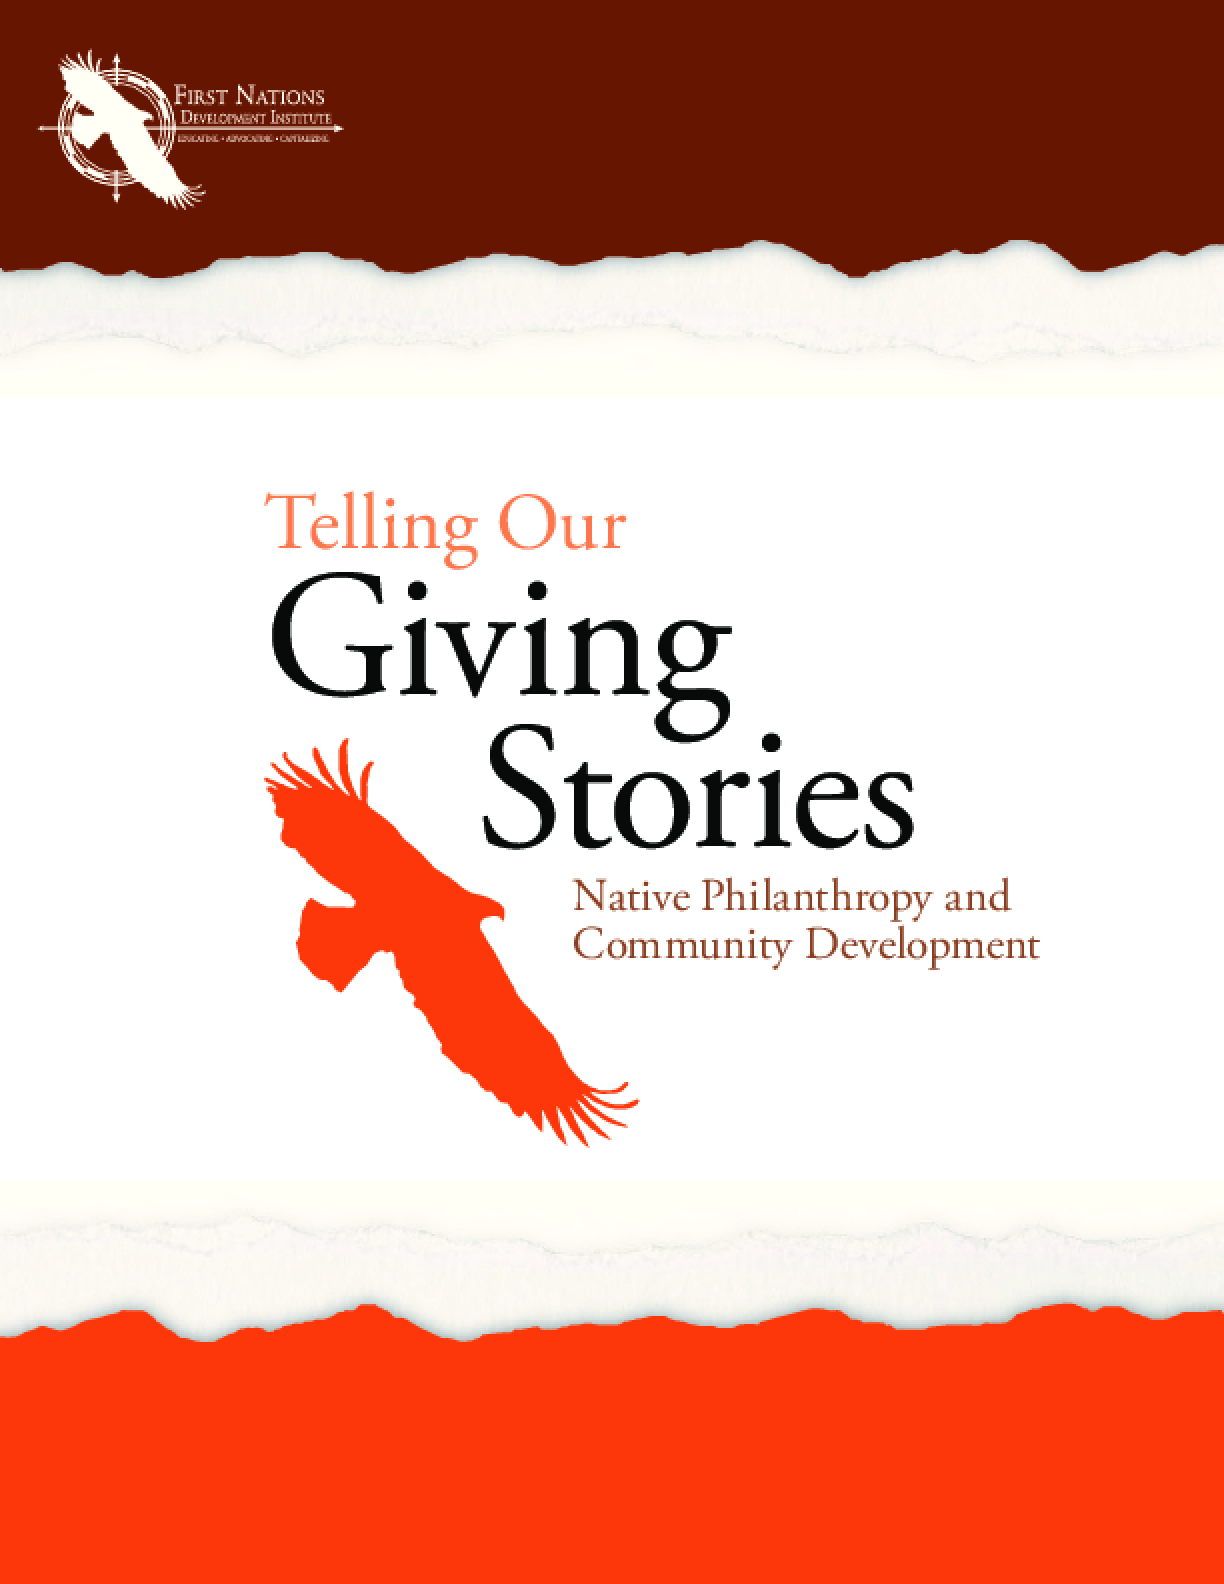 Telling Our Giving Stories: Native Philanthropy and Community Development